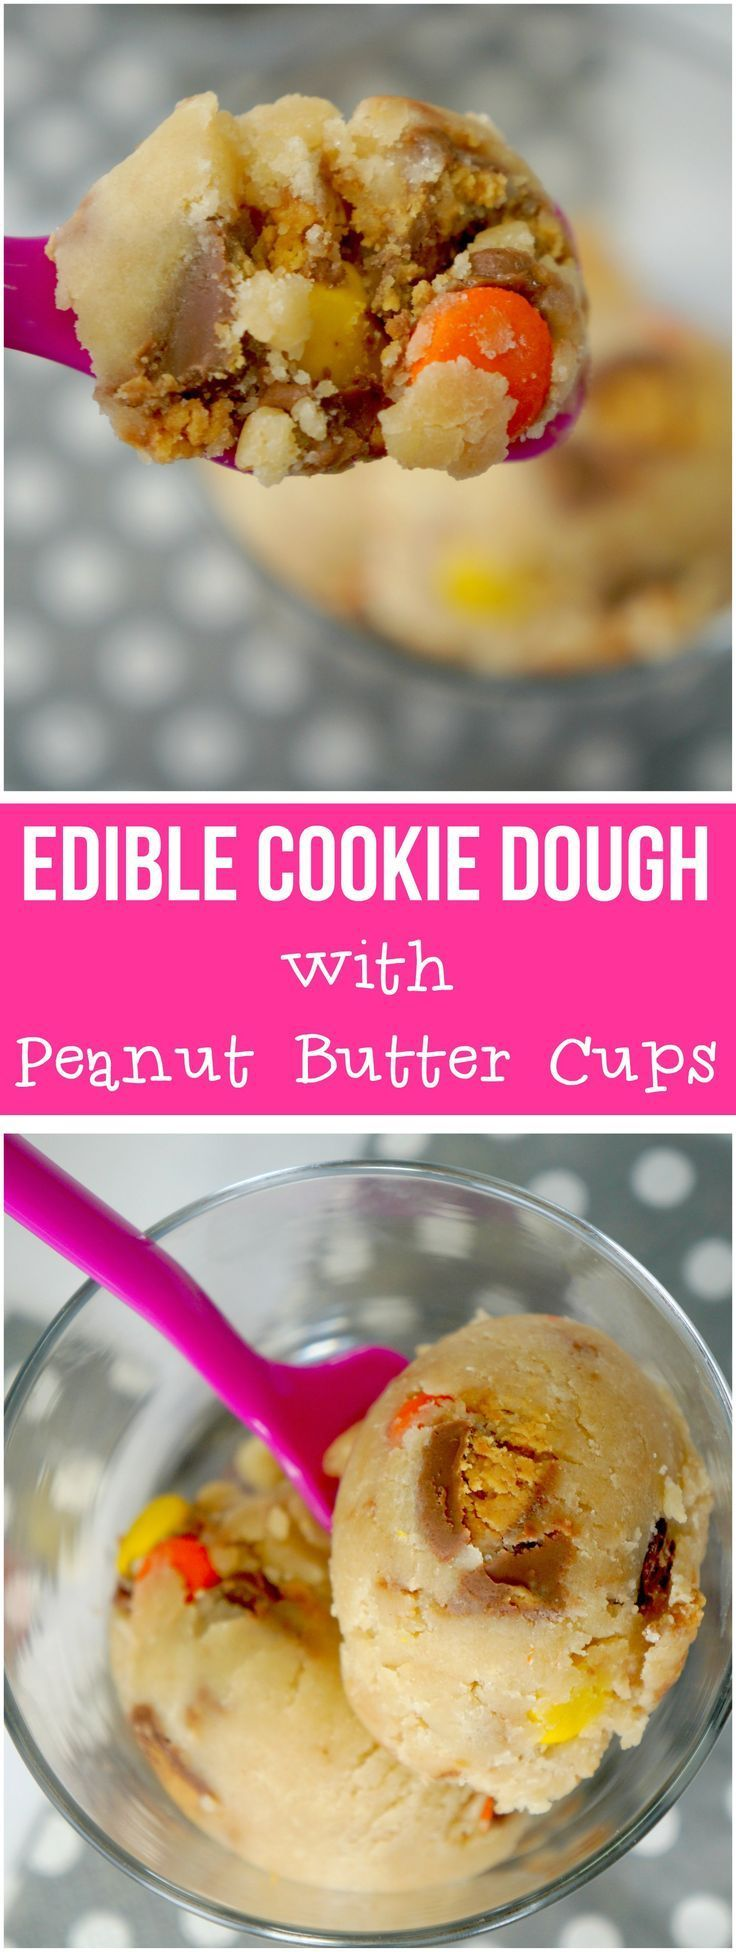 Edible cookie dough recipe with peanut butter cups and Reese's pieces. Easy no bake dessert recipe.